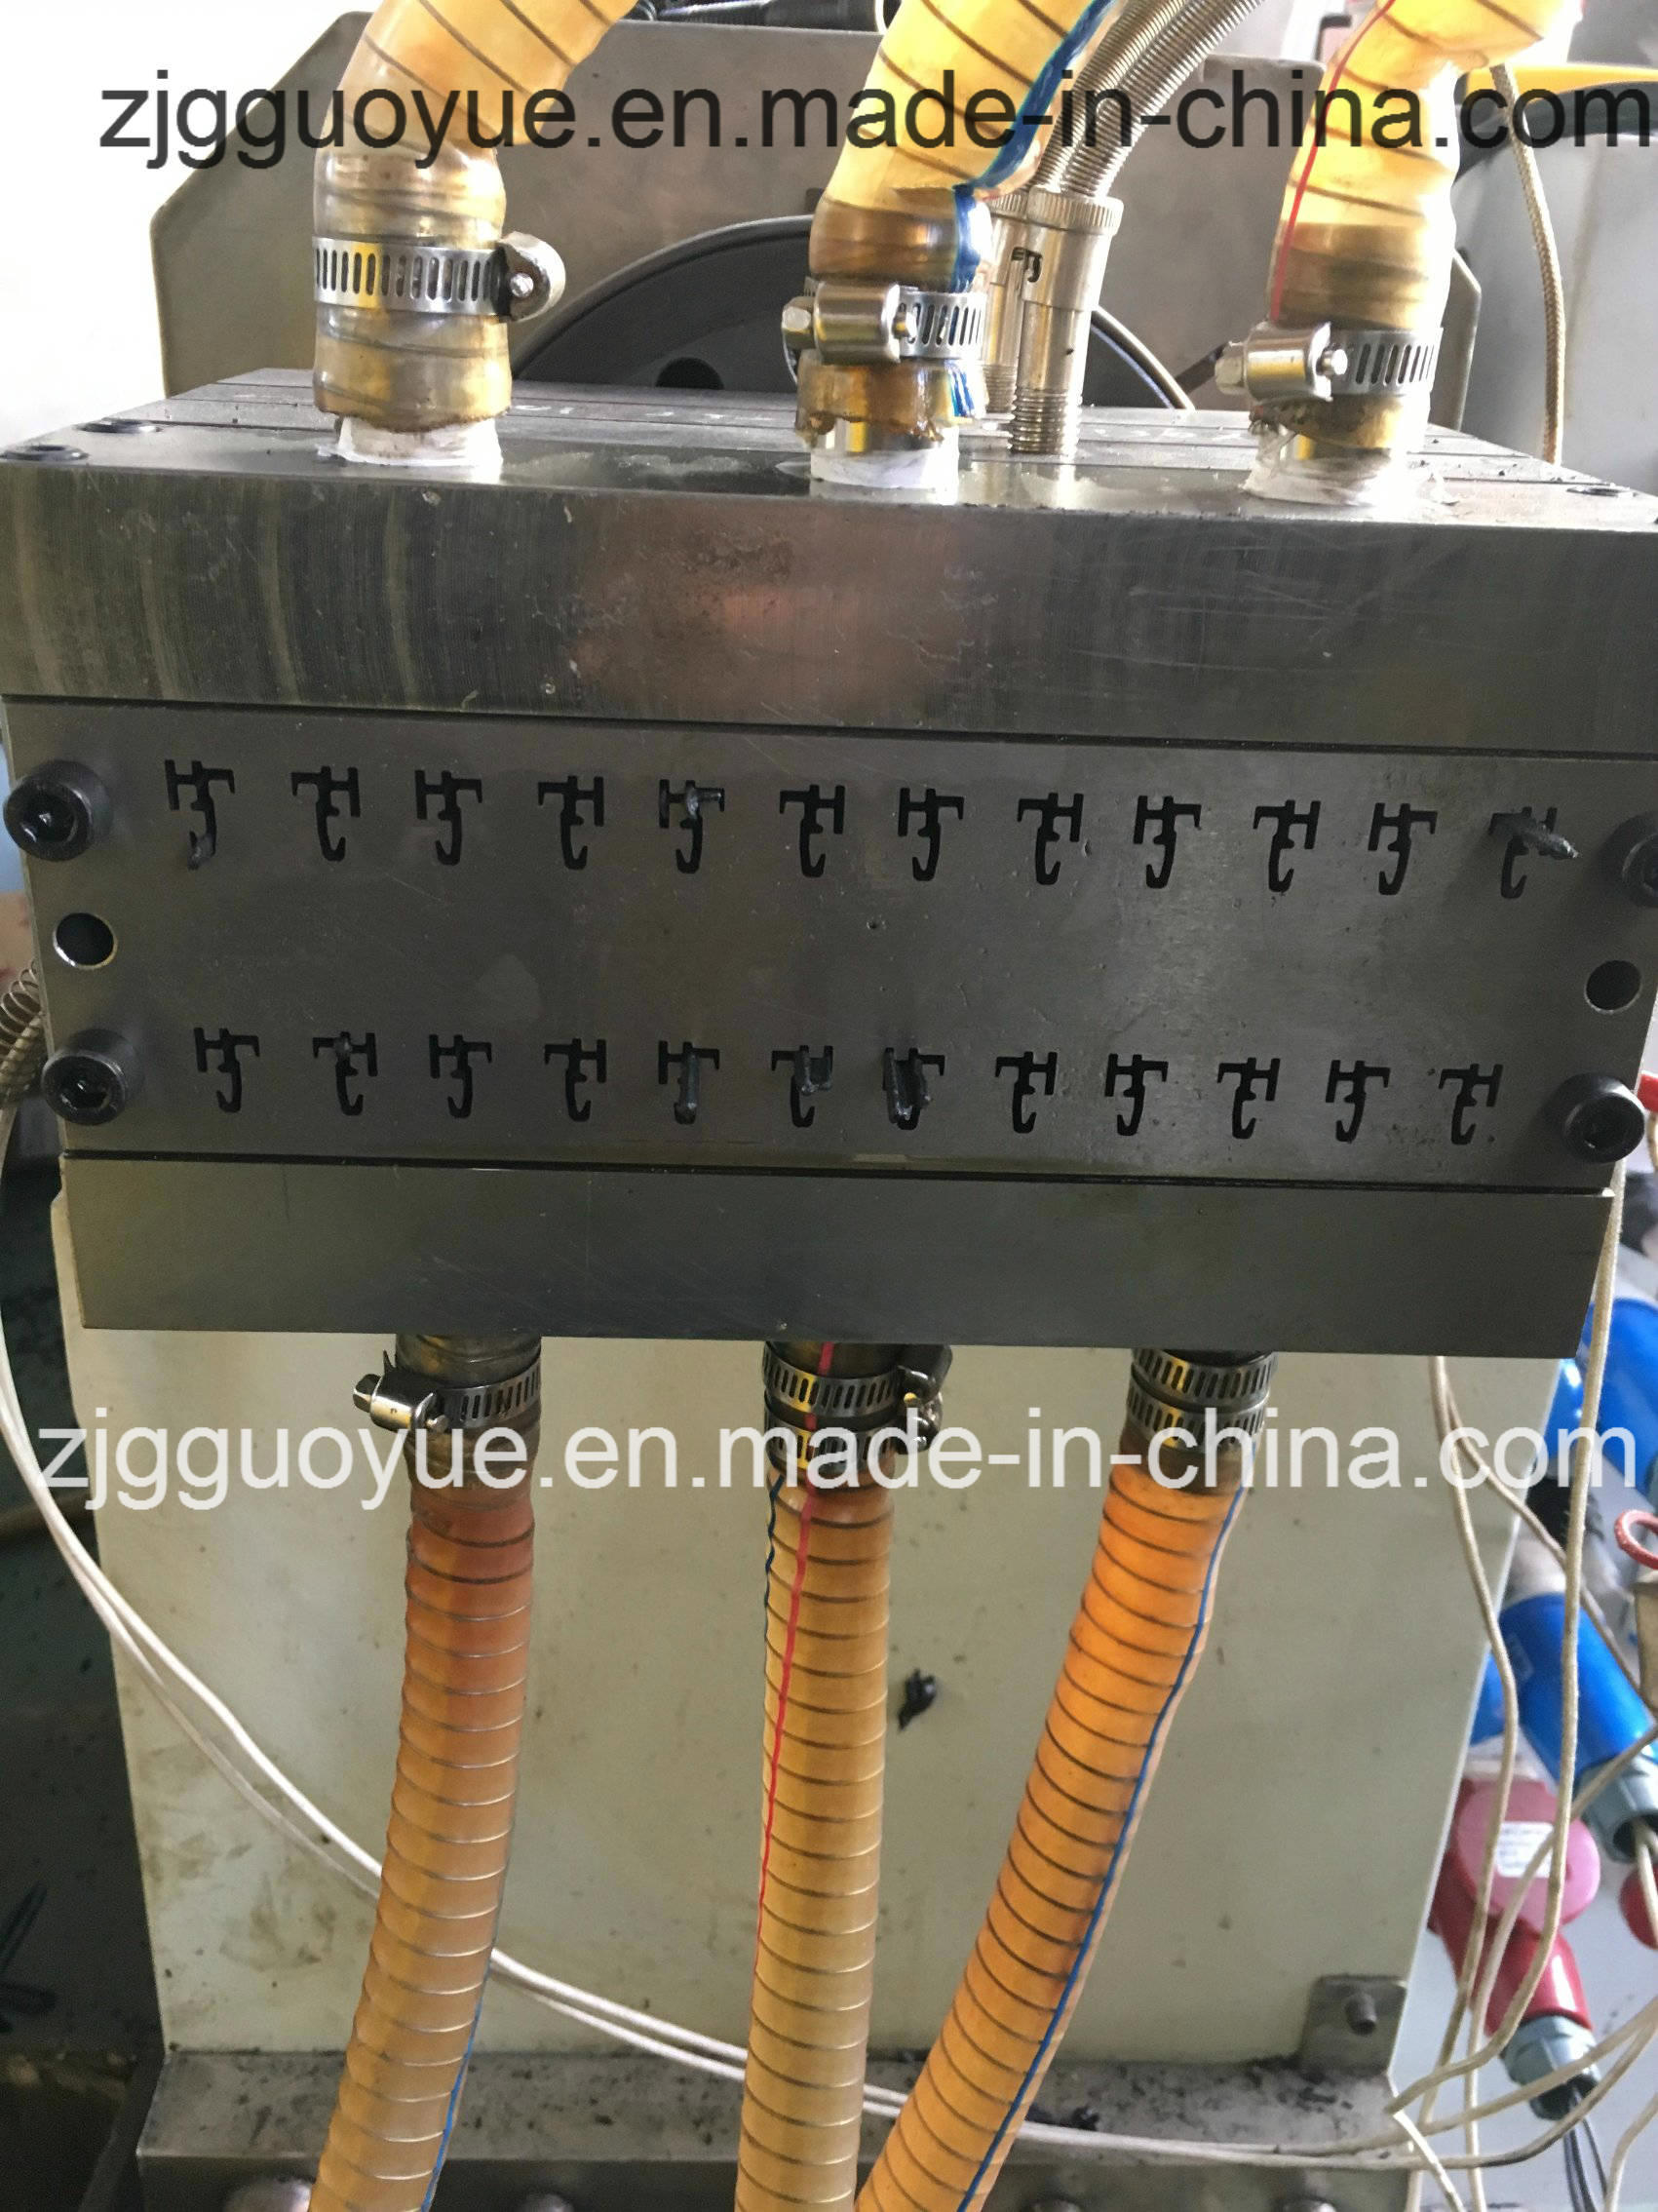 Thermal Break Strip Extrusion Machine